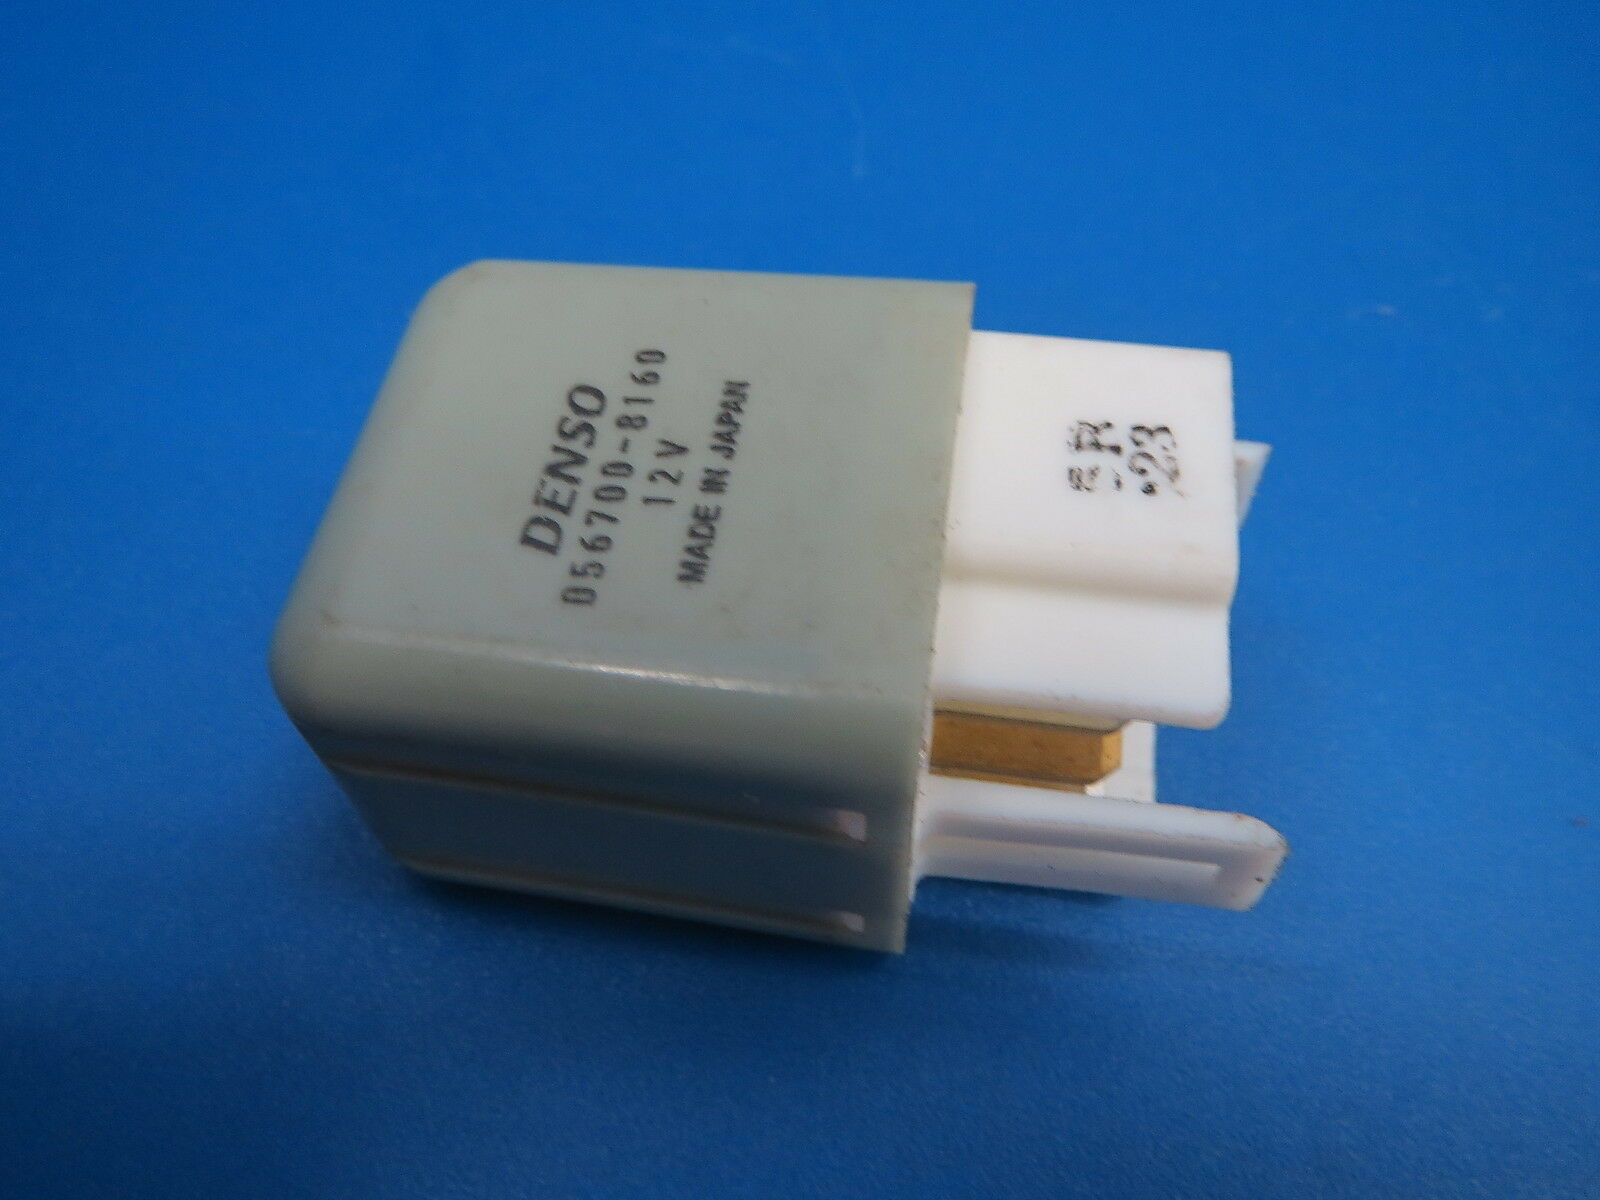 Fuse Box Relay Denso 056700 8160 12v Gray Made In Japan B3 For Sale Adapter